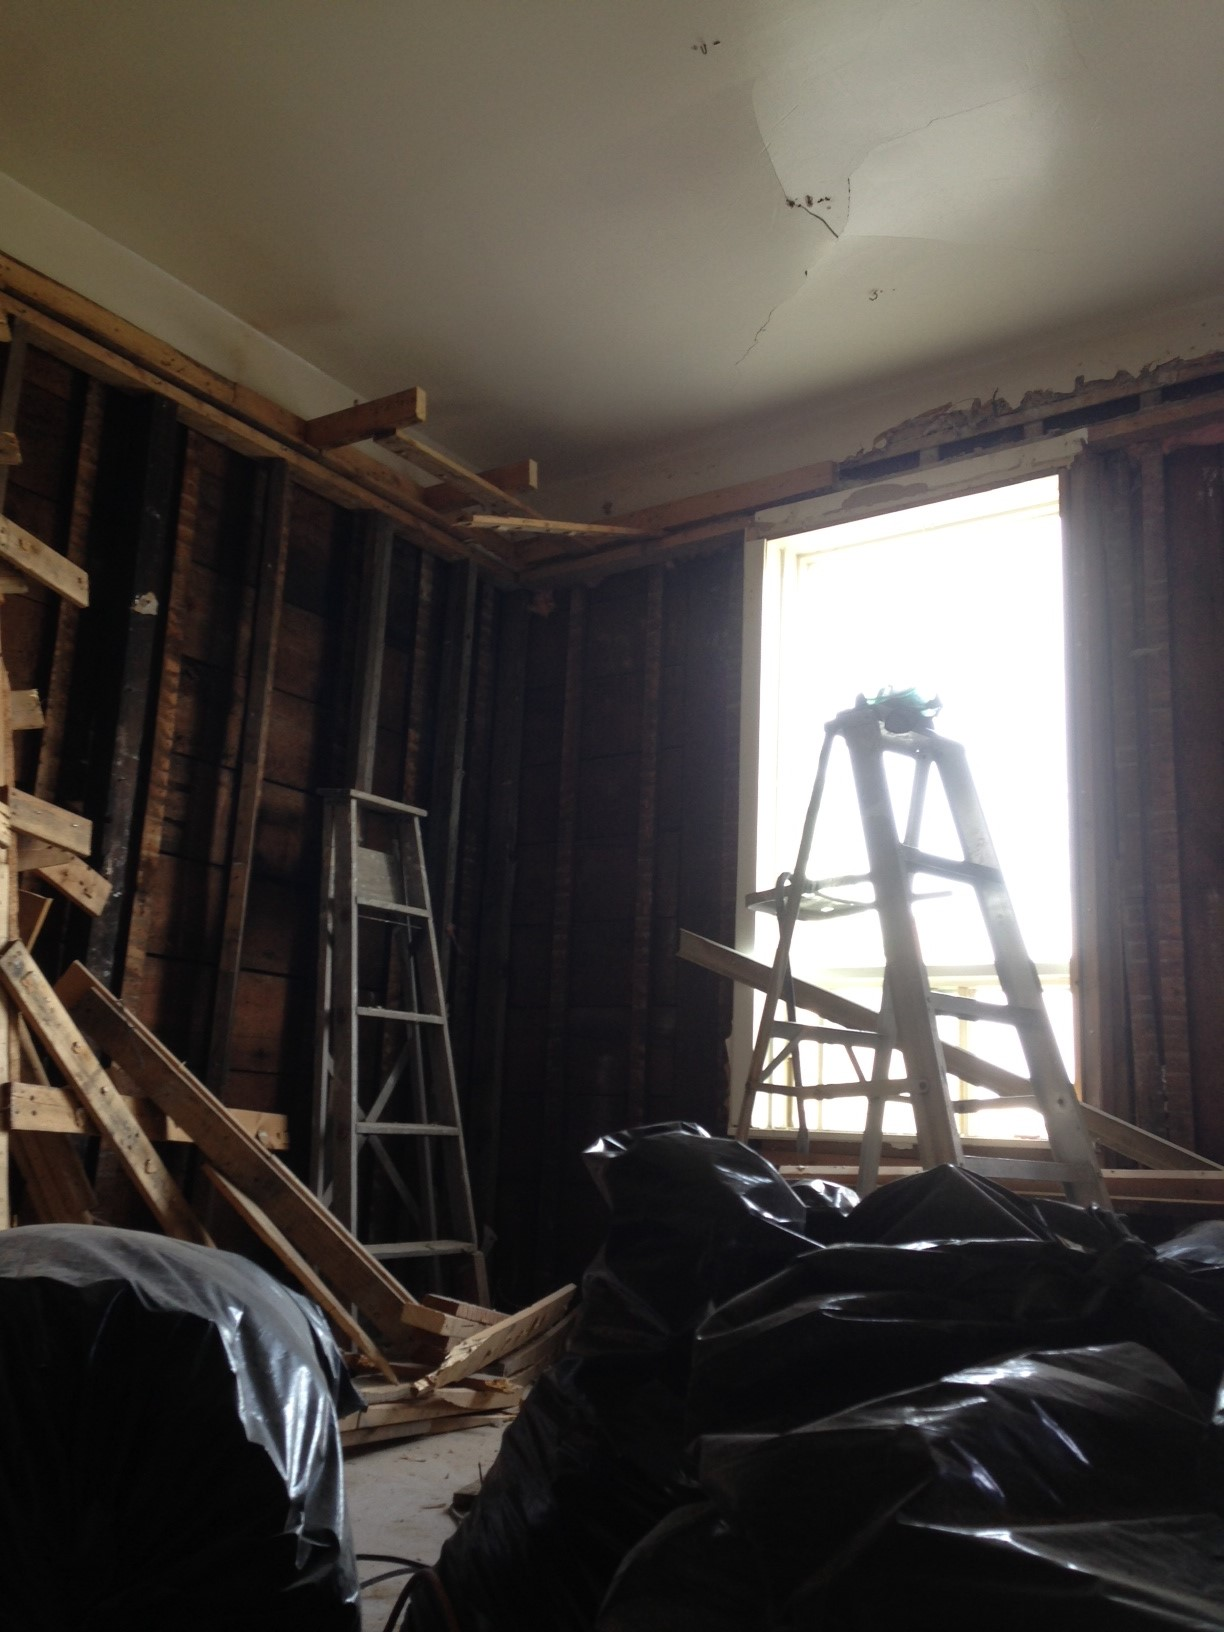 Drywall and lowerd ceiling down in first room